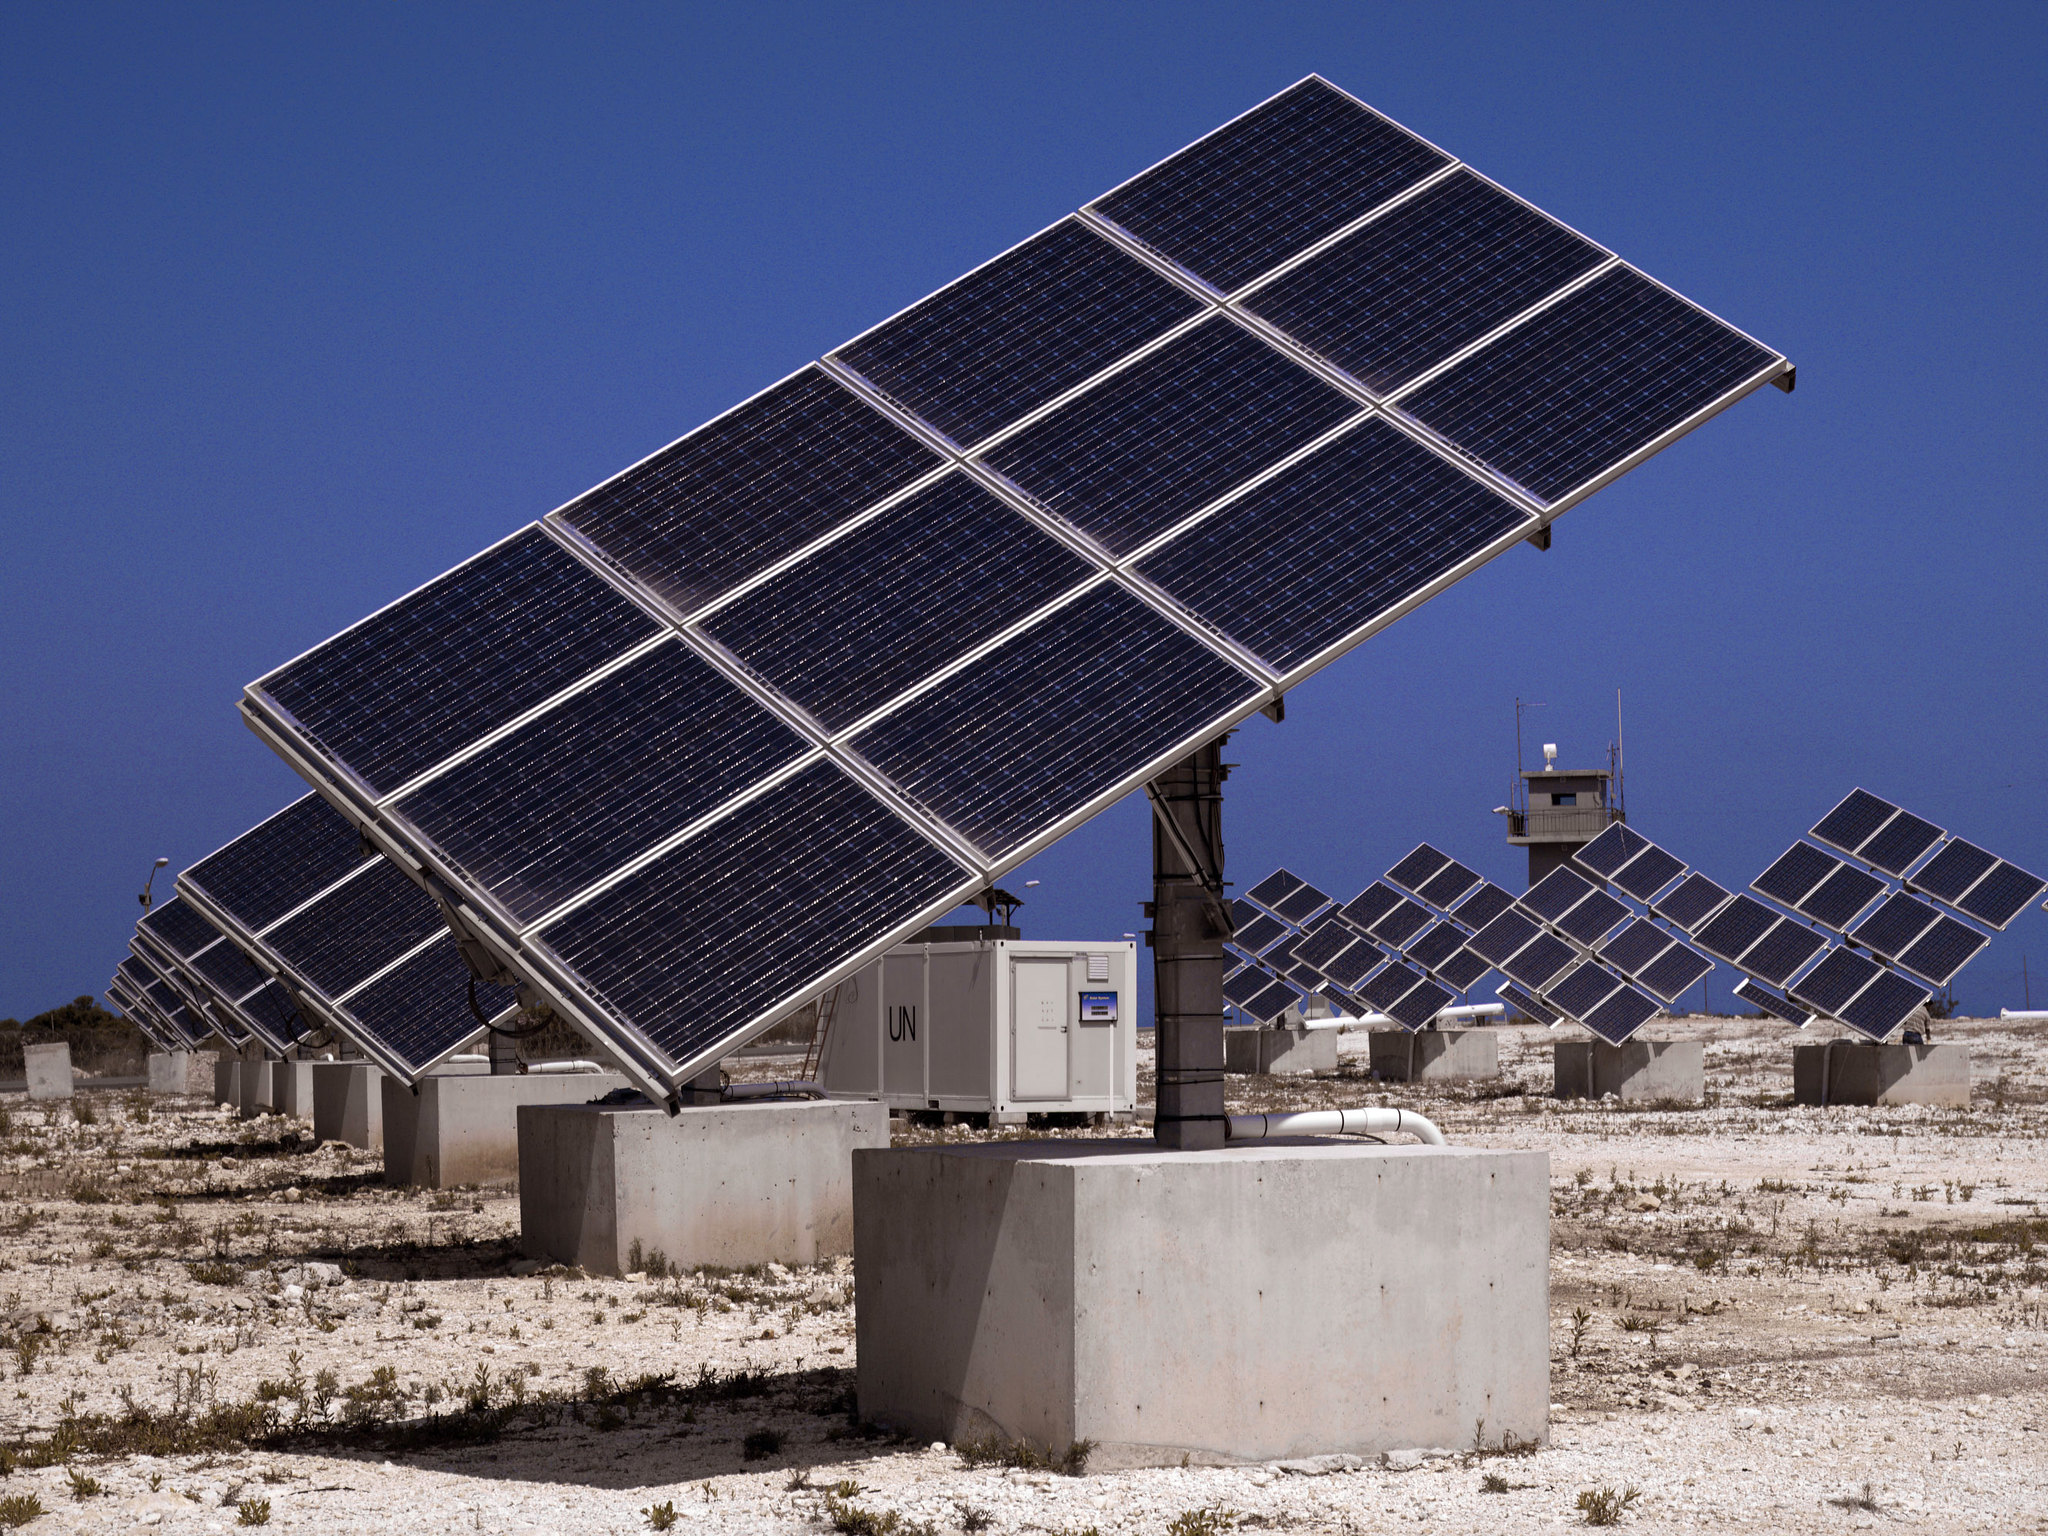 Solar farm at UNIFIL Headquarters in Naqoura, Lebanon. Photo credit: Pasqual Gorriz/ UNIFIL.